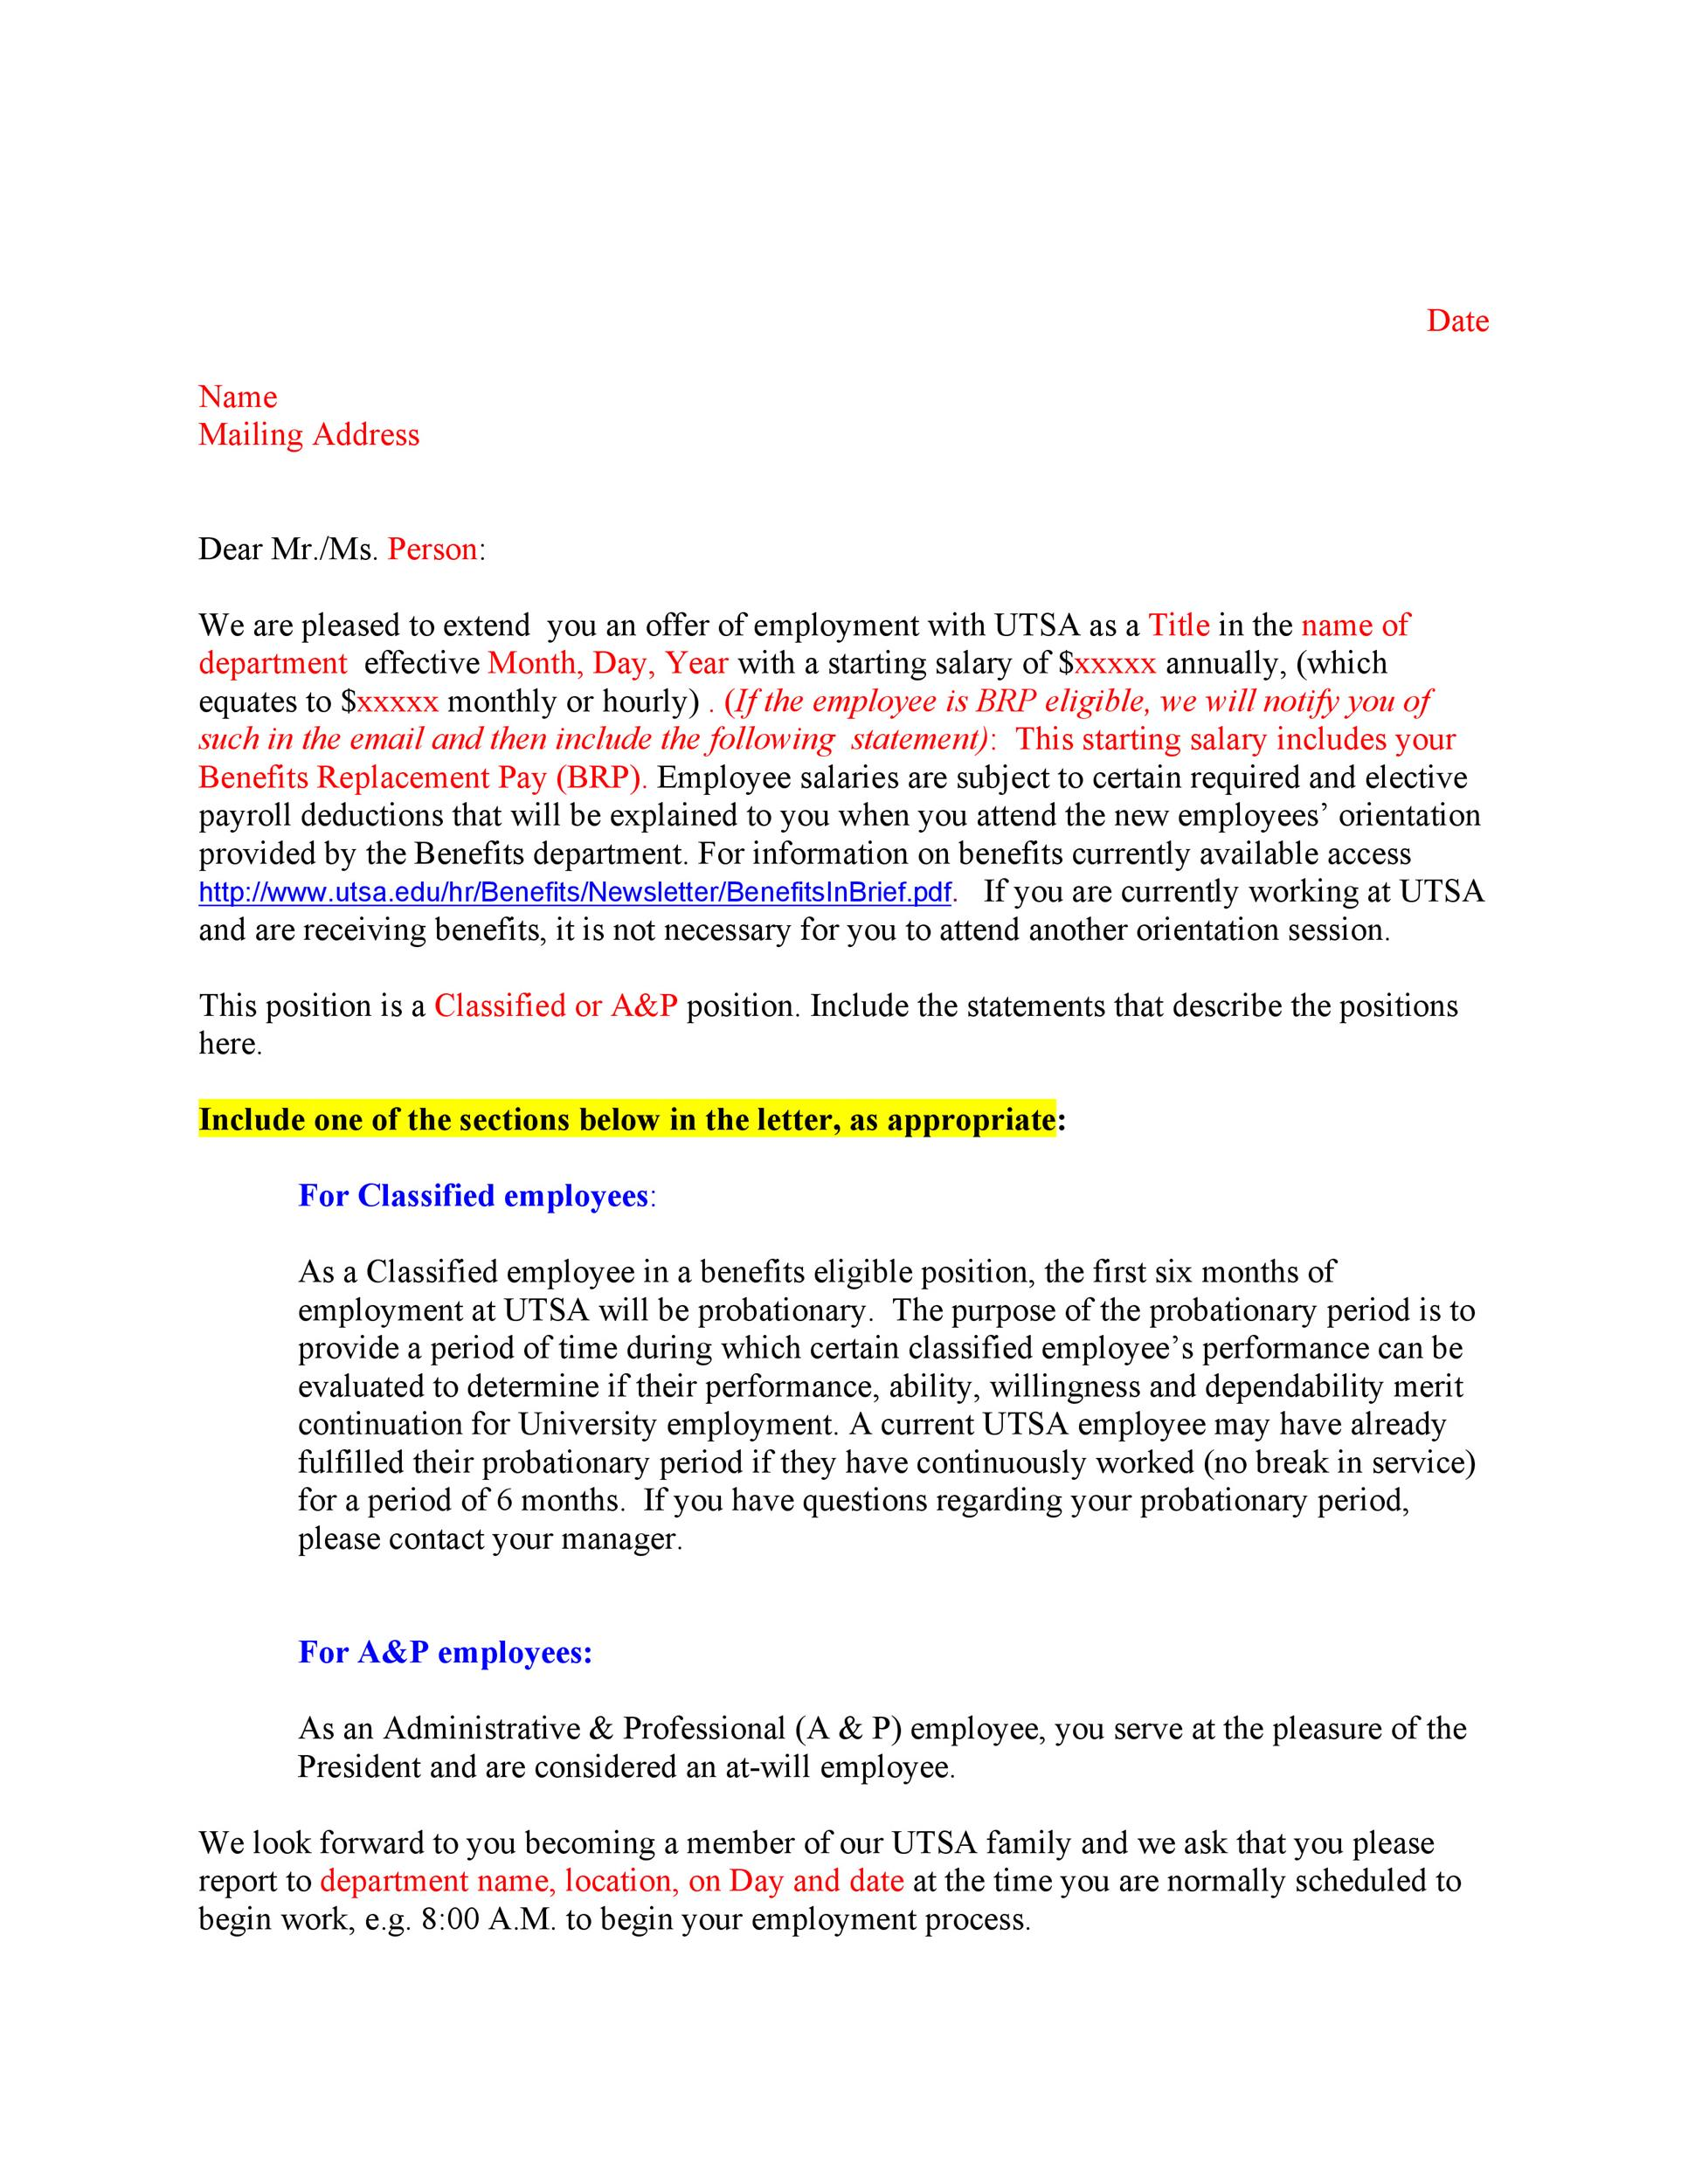 fantastic offer letter templates employment counter offer job offer letter 02